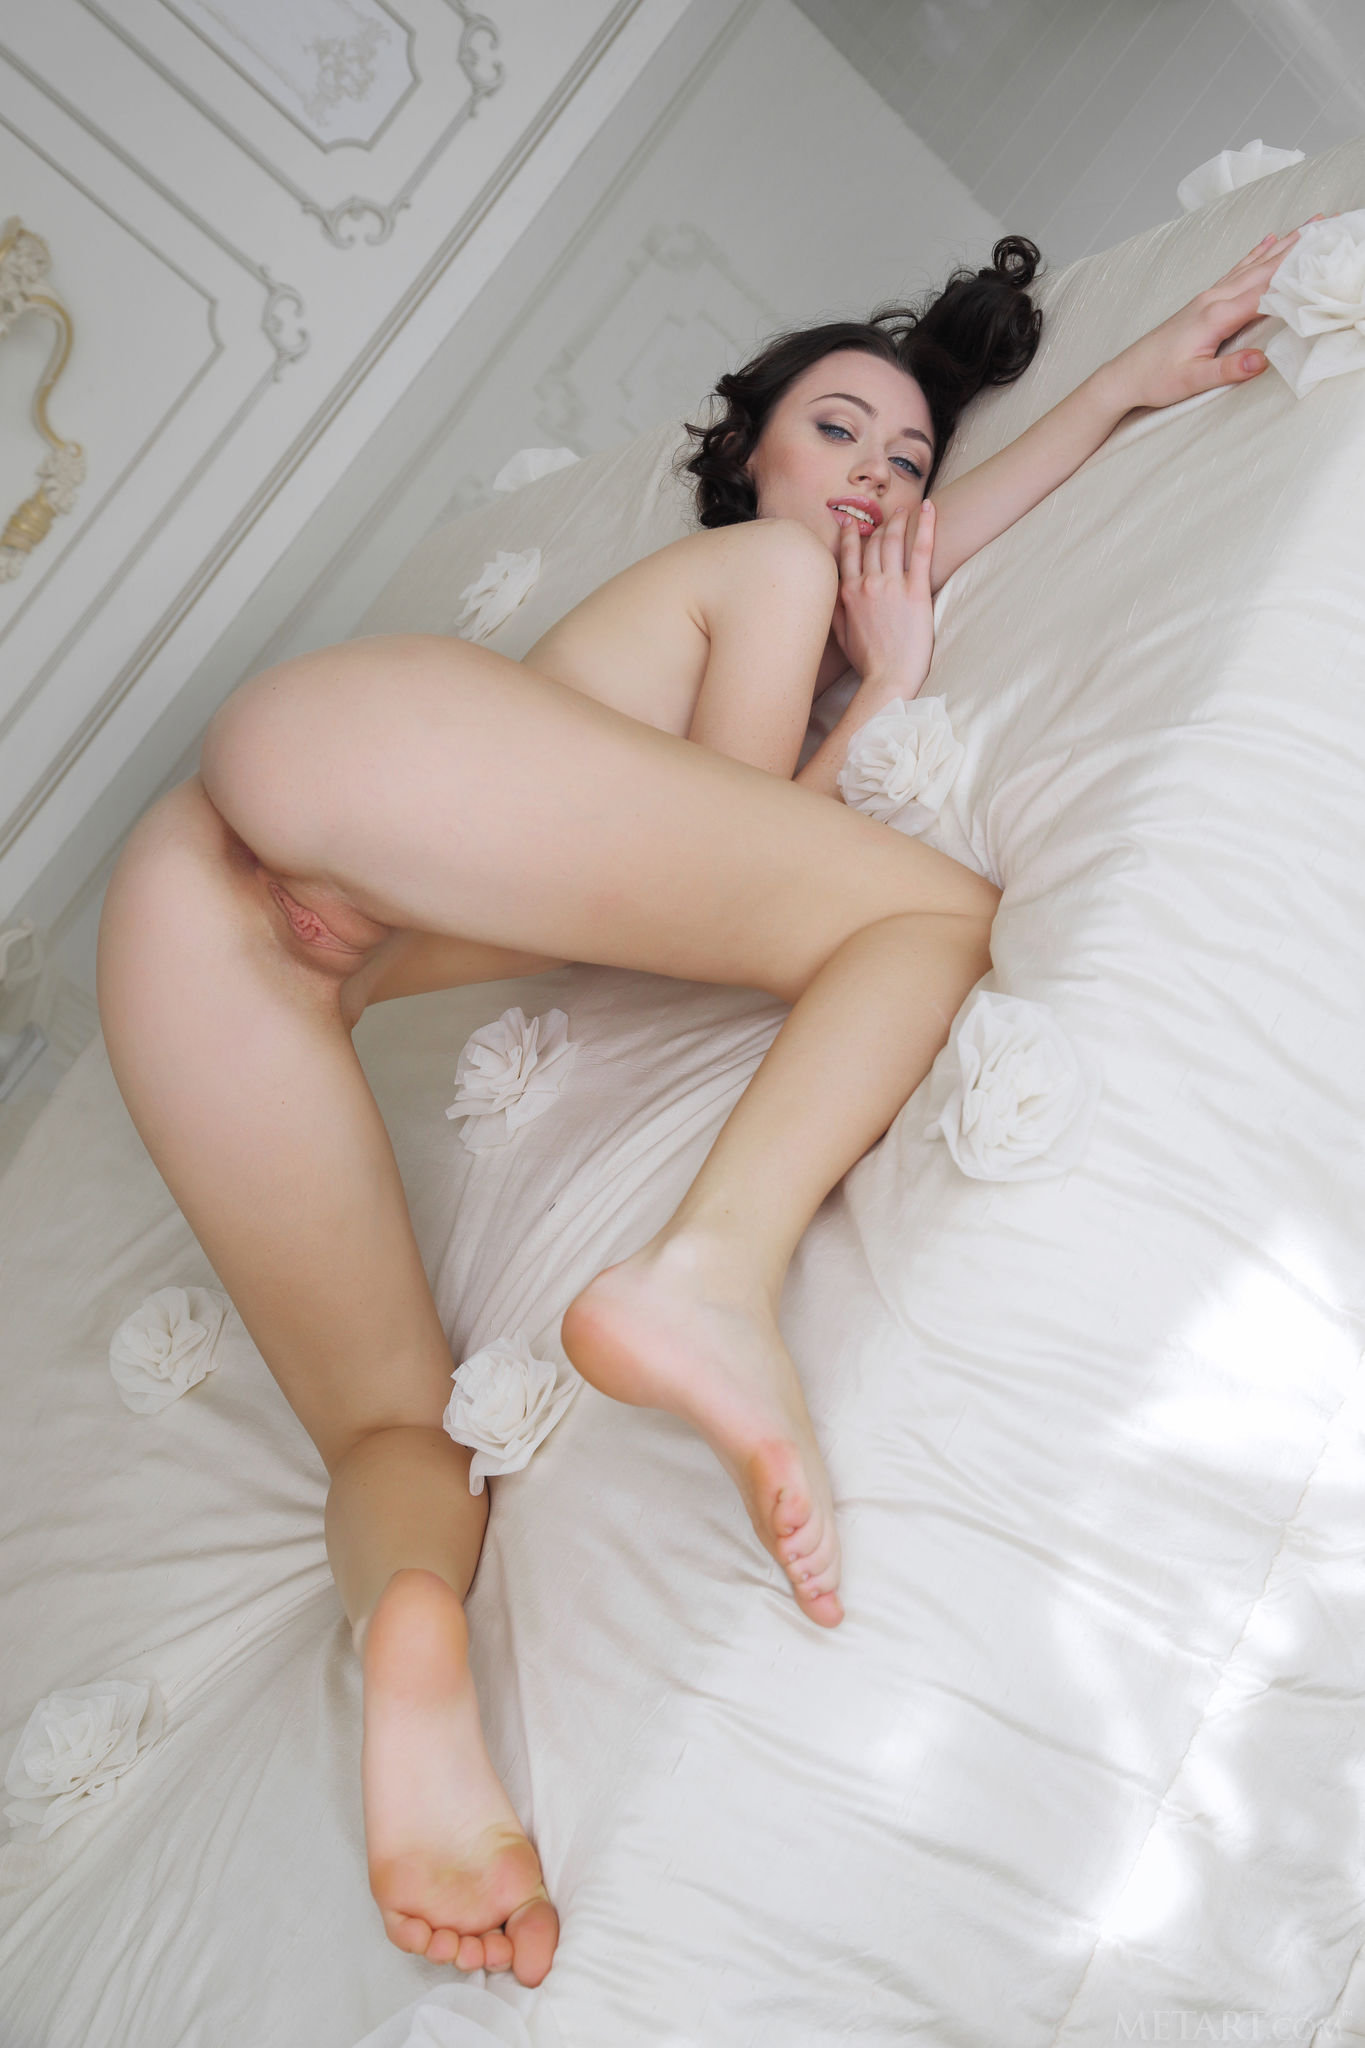 free horny uk women live chat cams Asshole, Eyesdown, Frombehind, Lipstick, Longhair, Onbed, Onherknees, Openlegs, Pussy, Redhead, Shaved, Woman